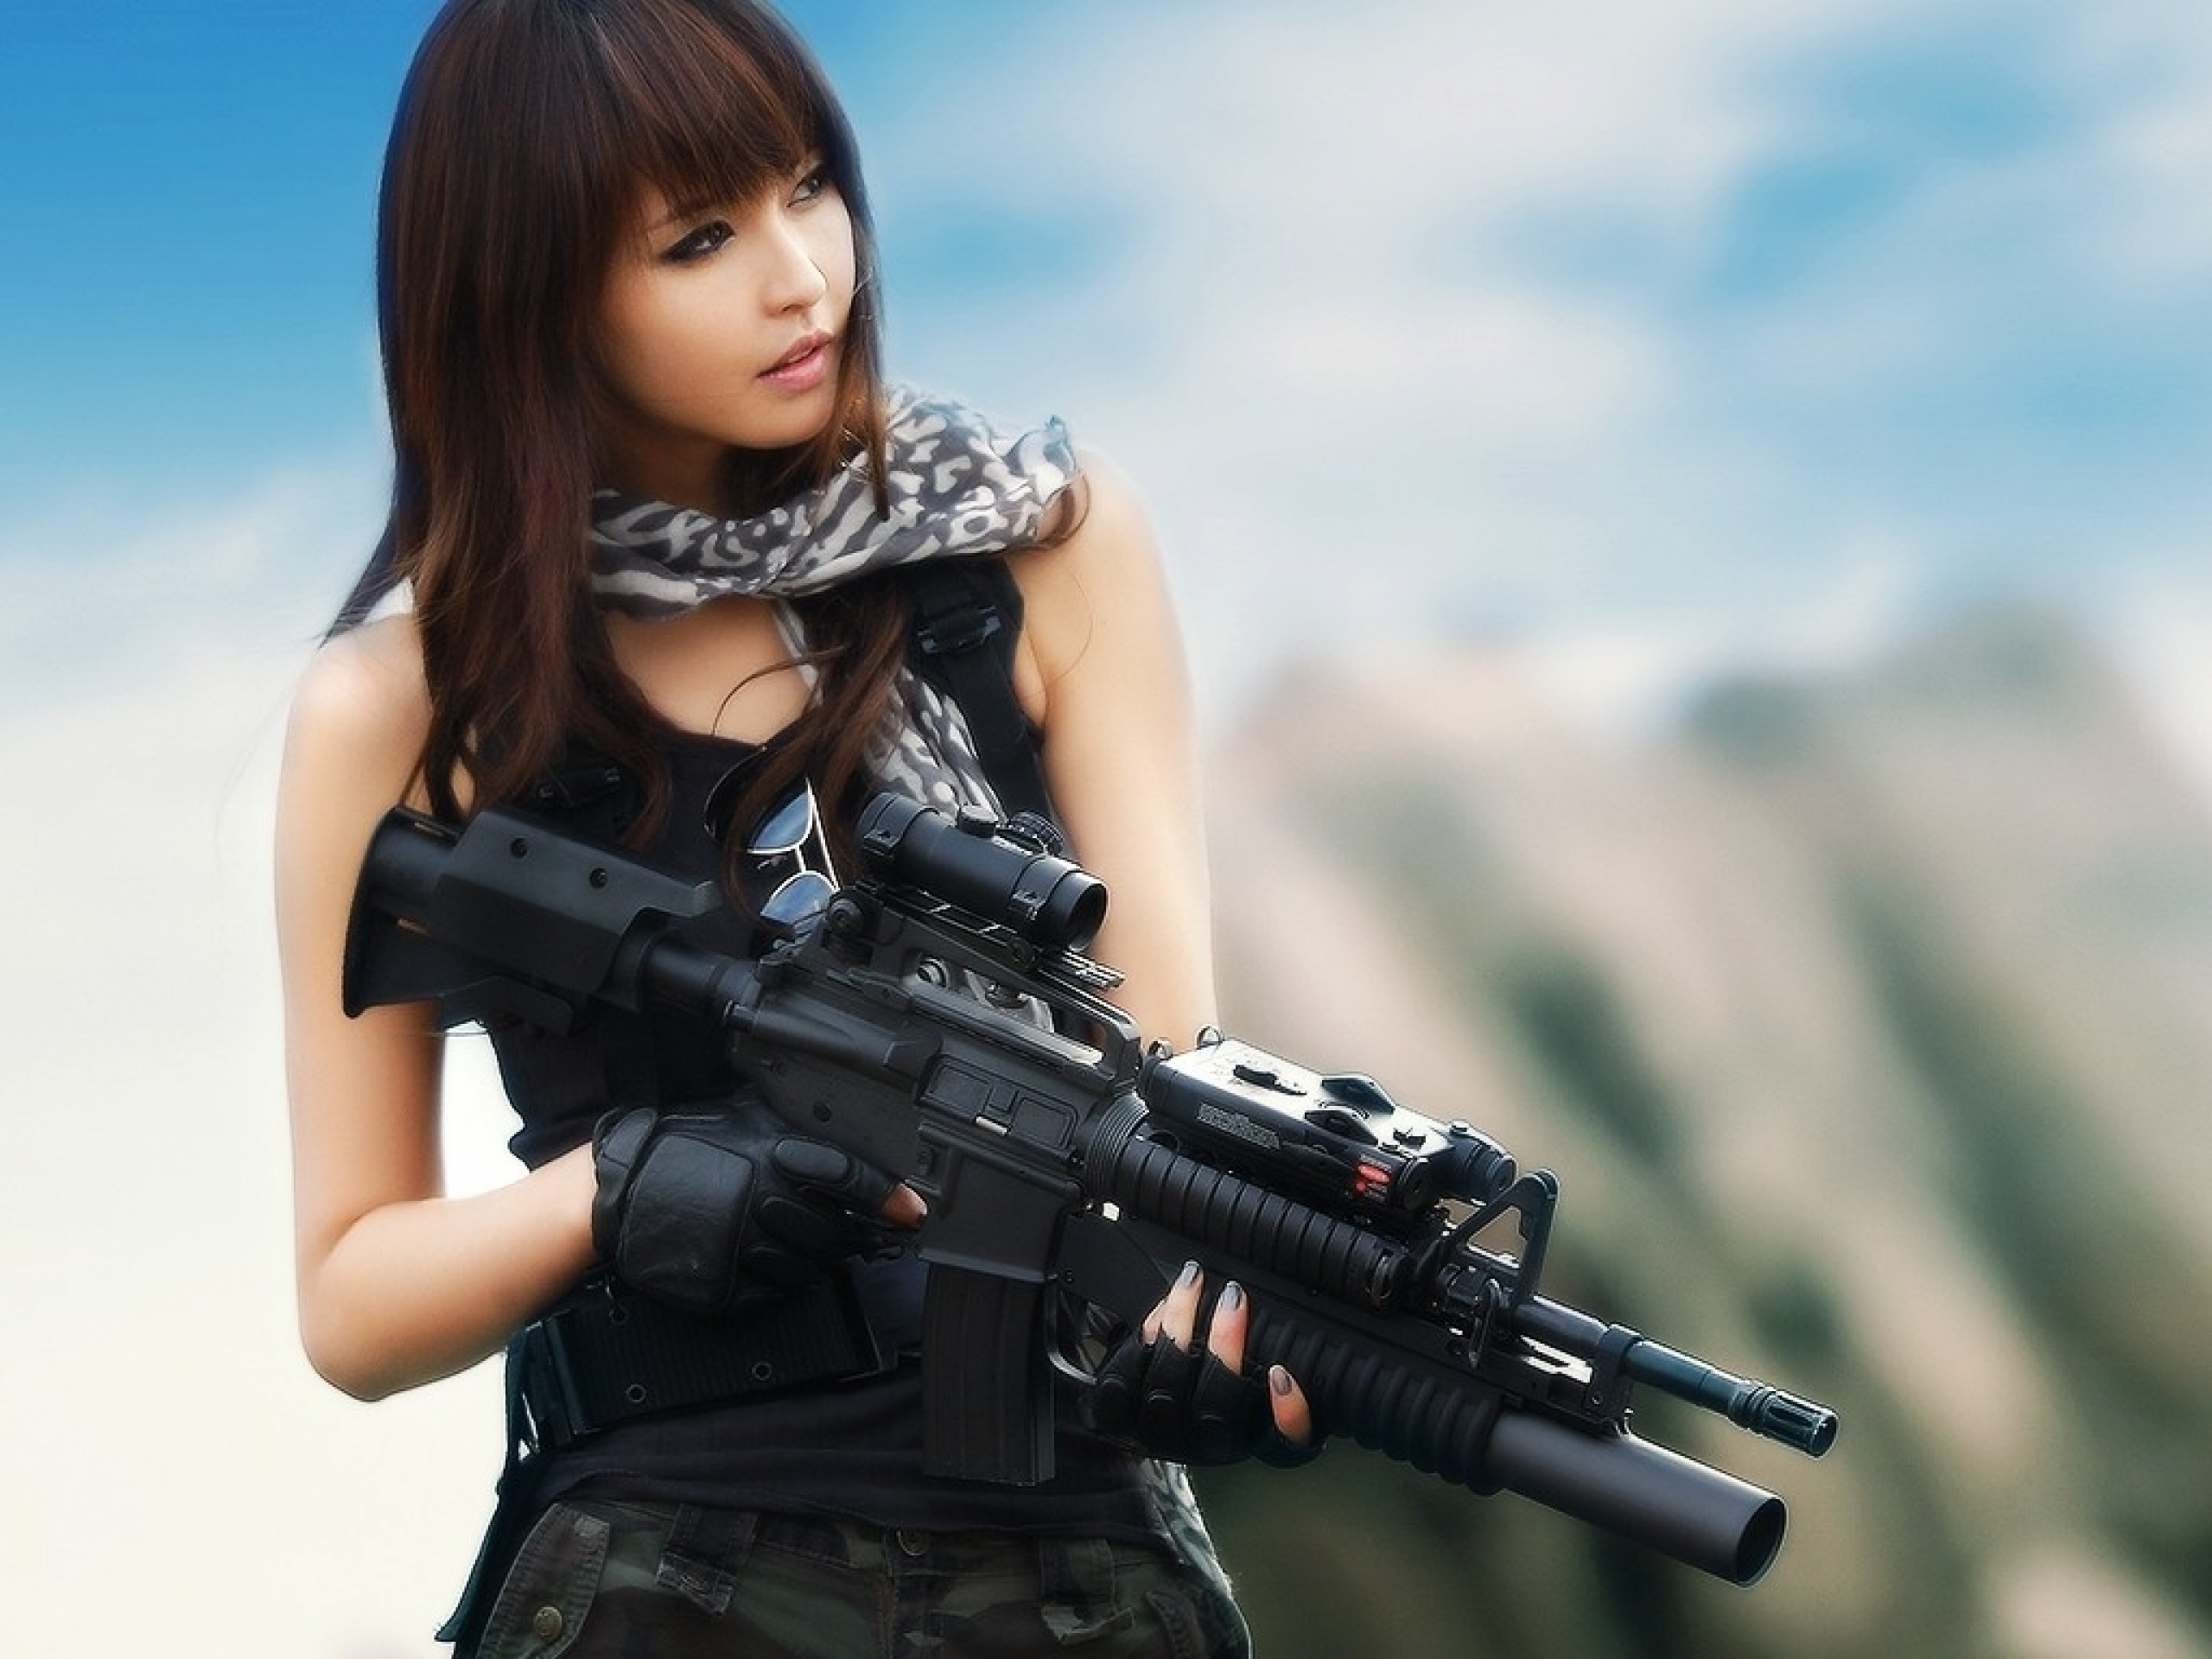 asians_girls_with_guns_m4a1_asian_girls_1024x768_wallpaper_Anime HD Wallpaper_2560x1920_www.wallpaperswa.com